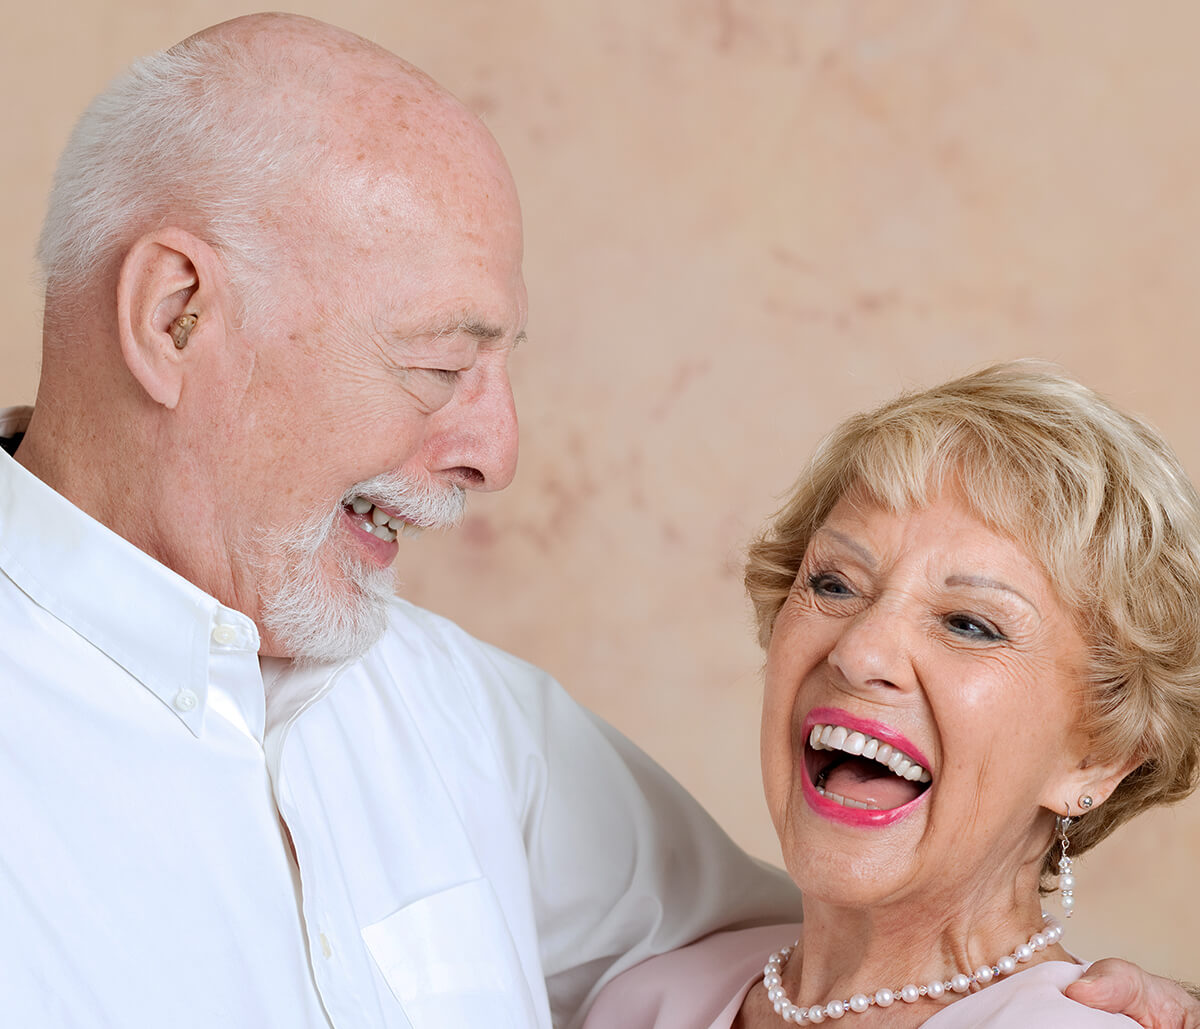 Partial Dentures Treatment at Pines Dental Associates in Pembroke Pines Area